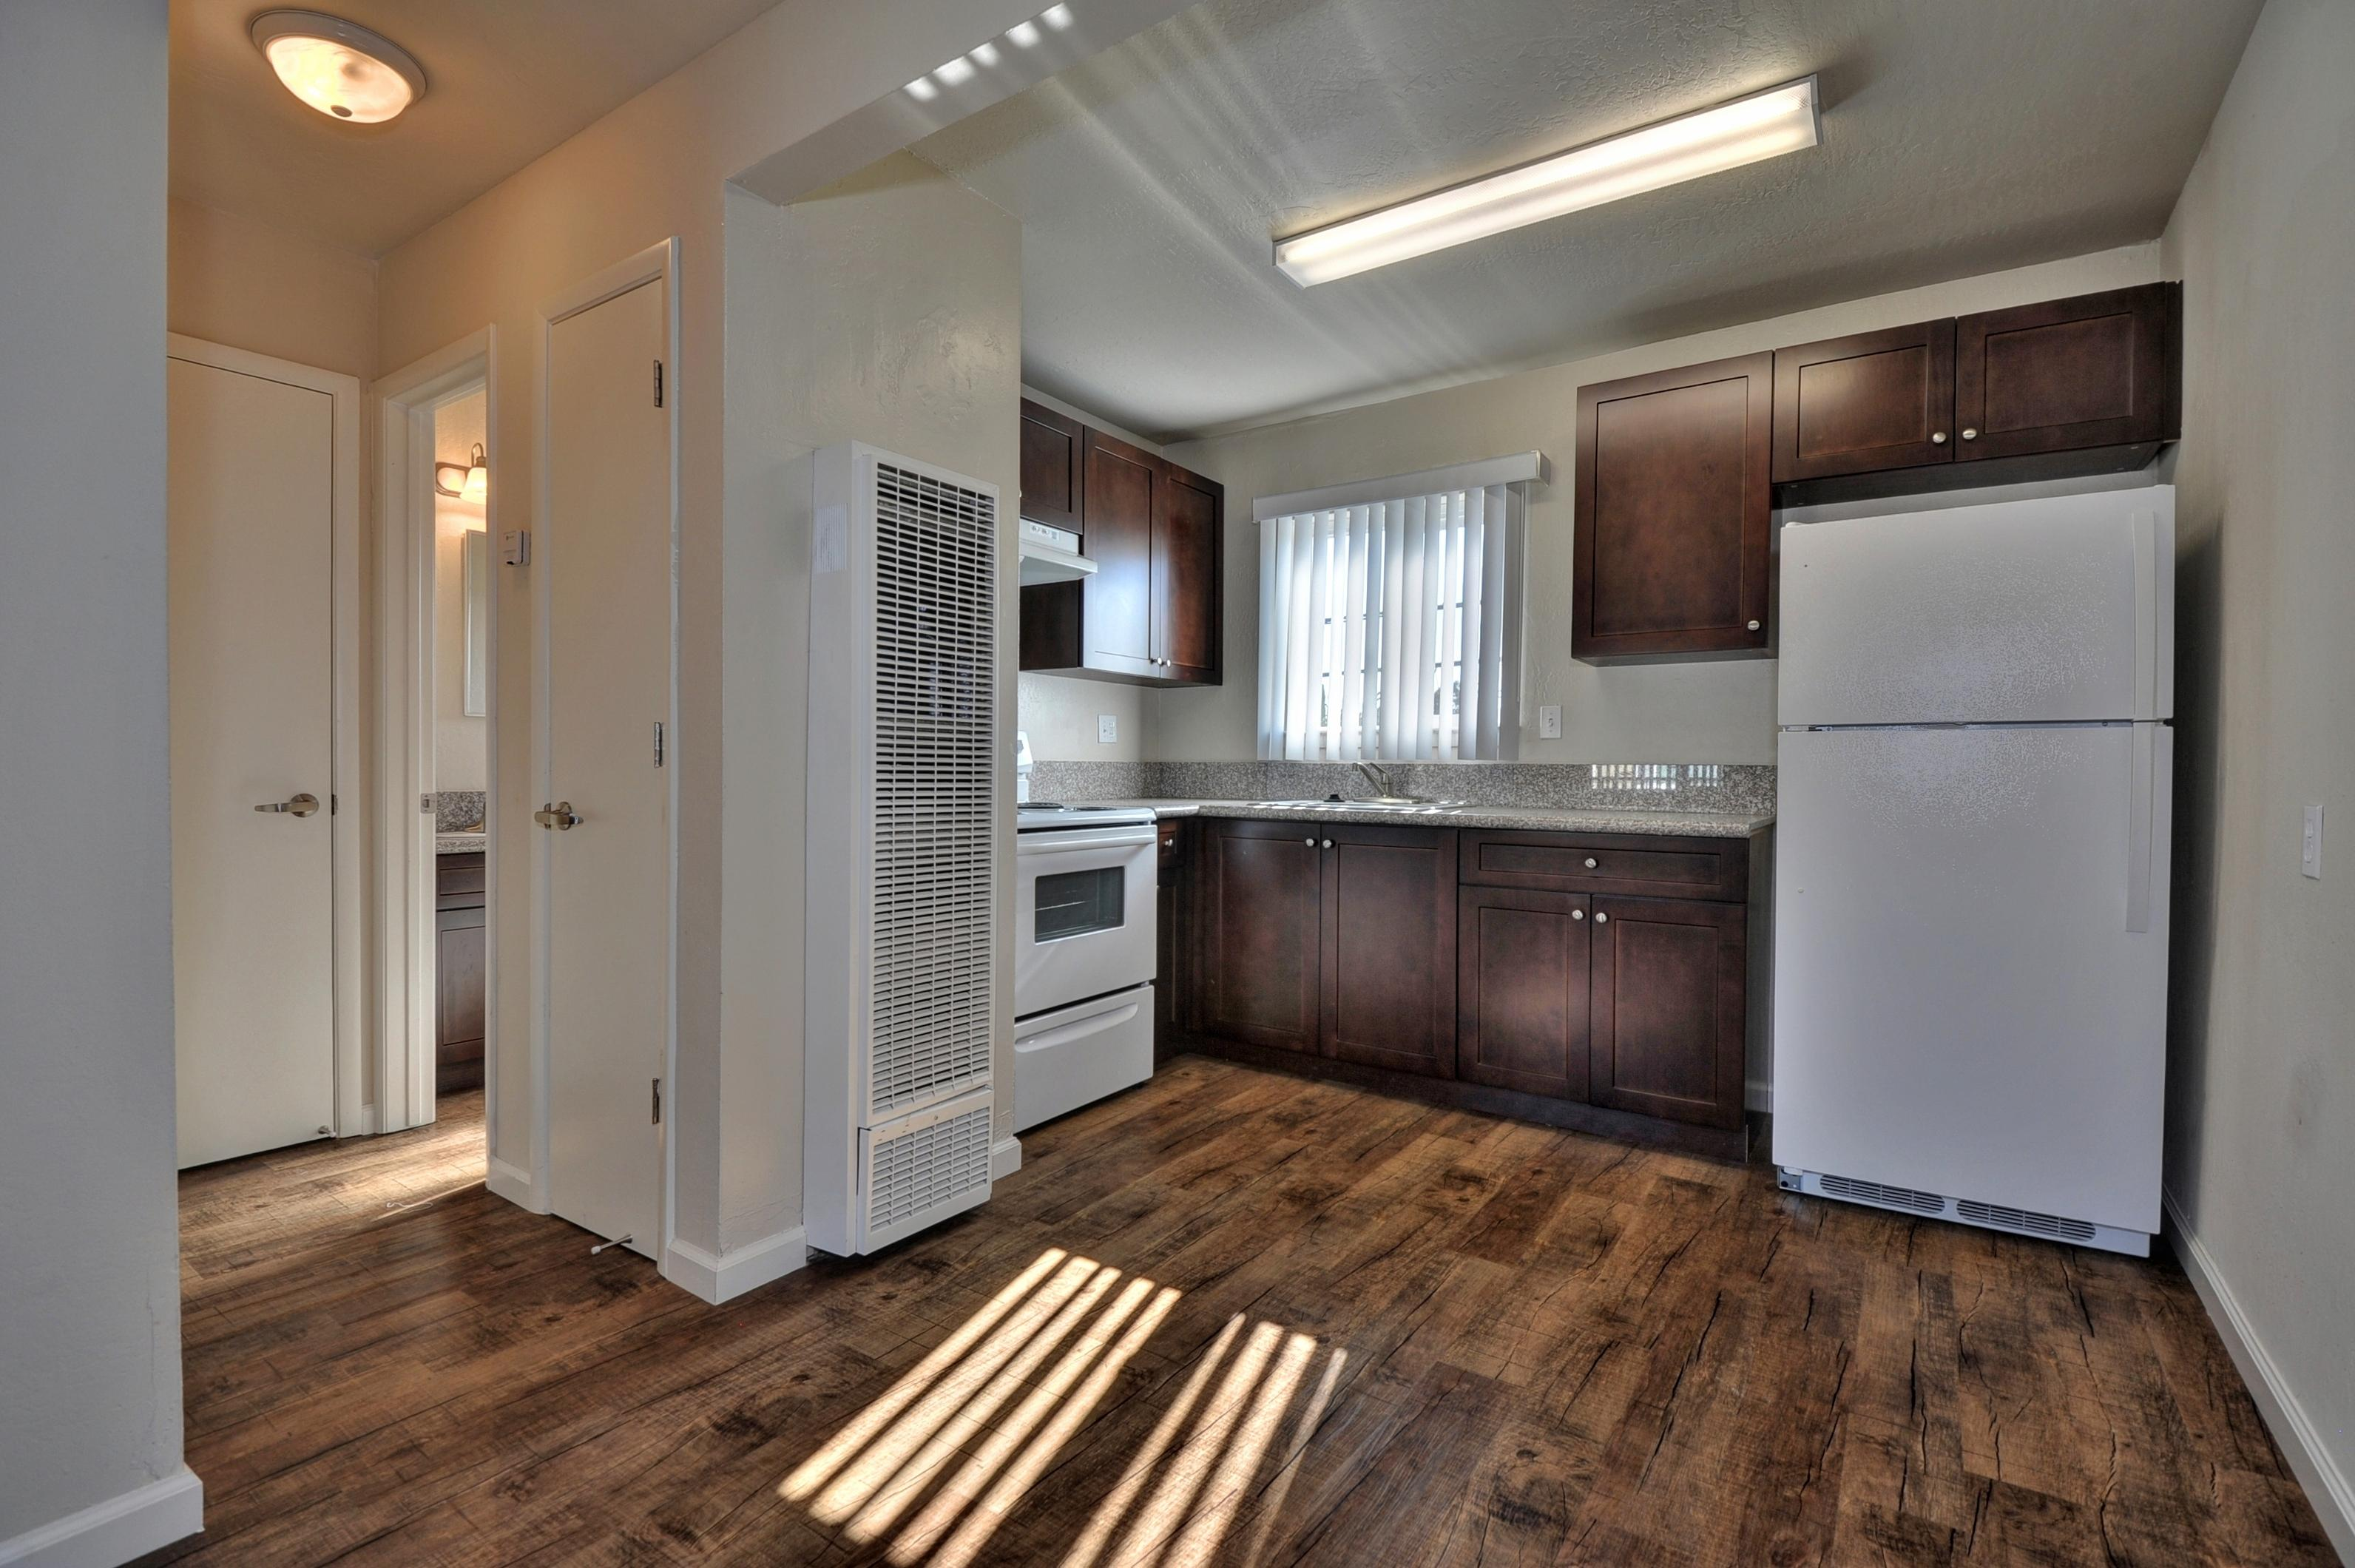 2738 Kollmar Dr San Jose CA-print-015-Studio Kitchen and Bathroom-1500x999-300dp